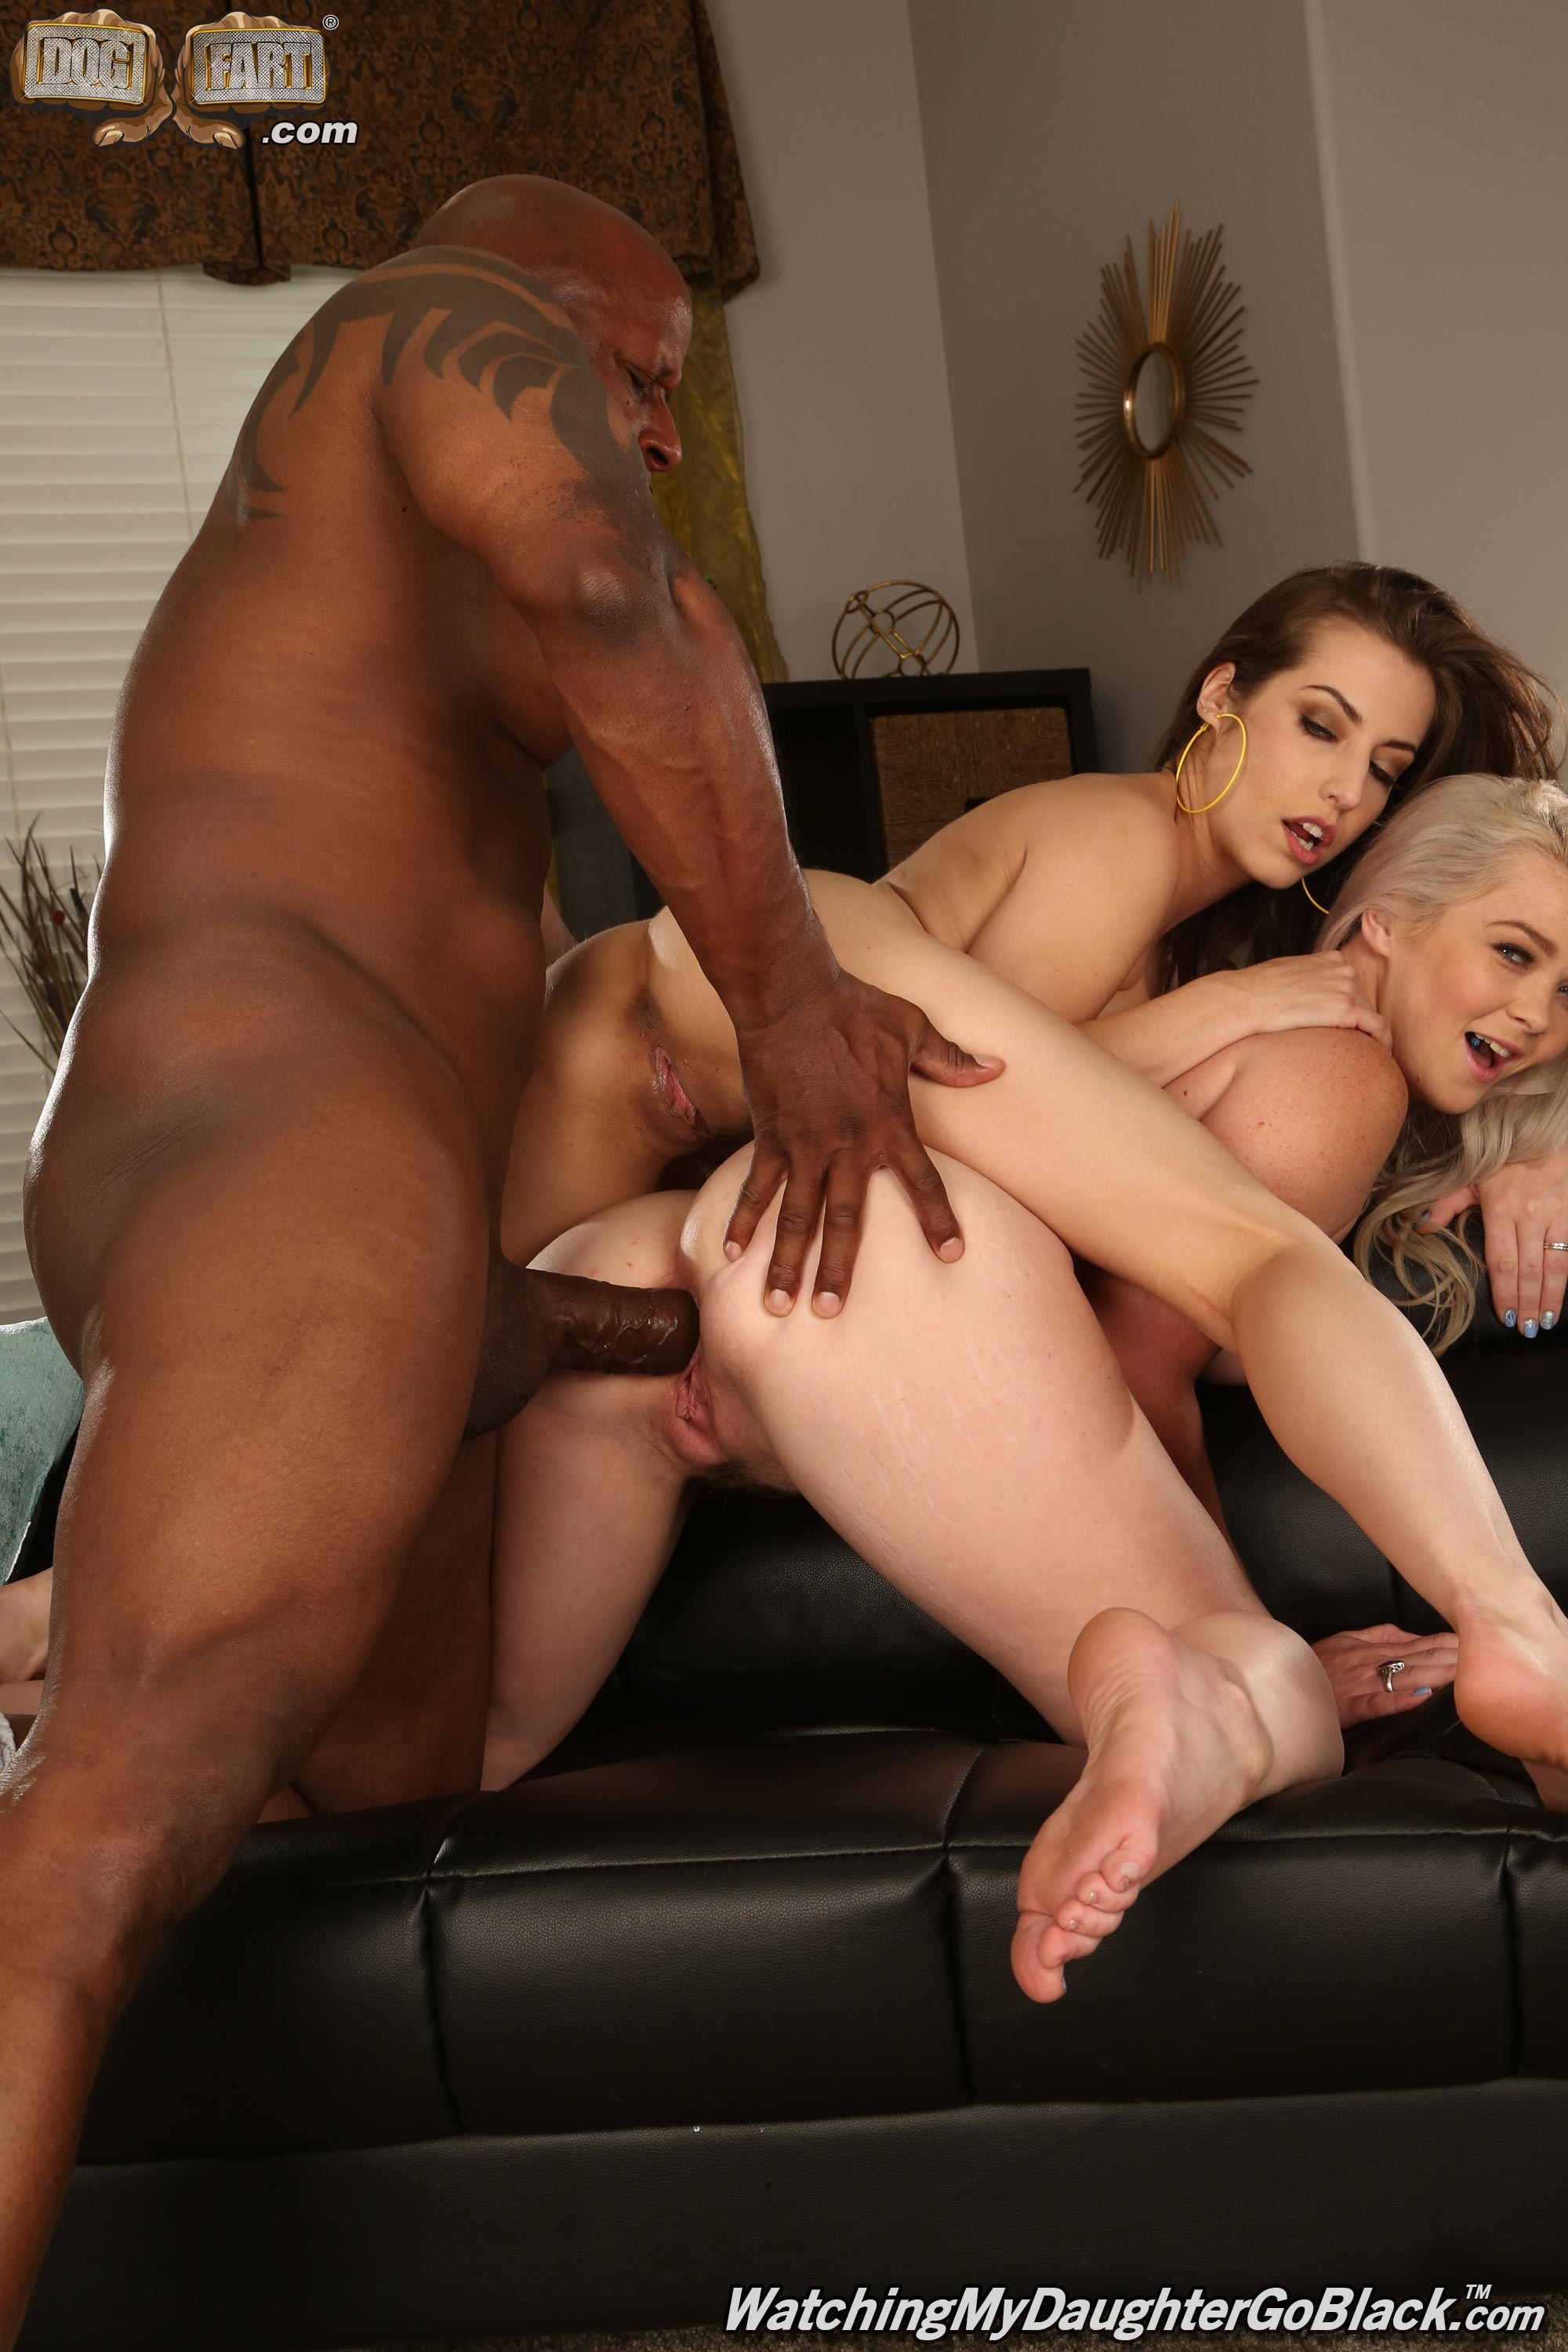 Dogfart 'and Spencer Bradley - Watching My Daughter Go Black' starring Kay Carter (Photo 27)